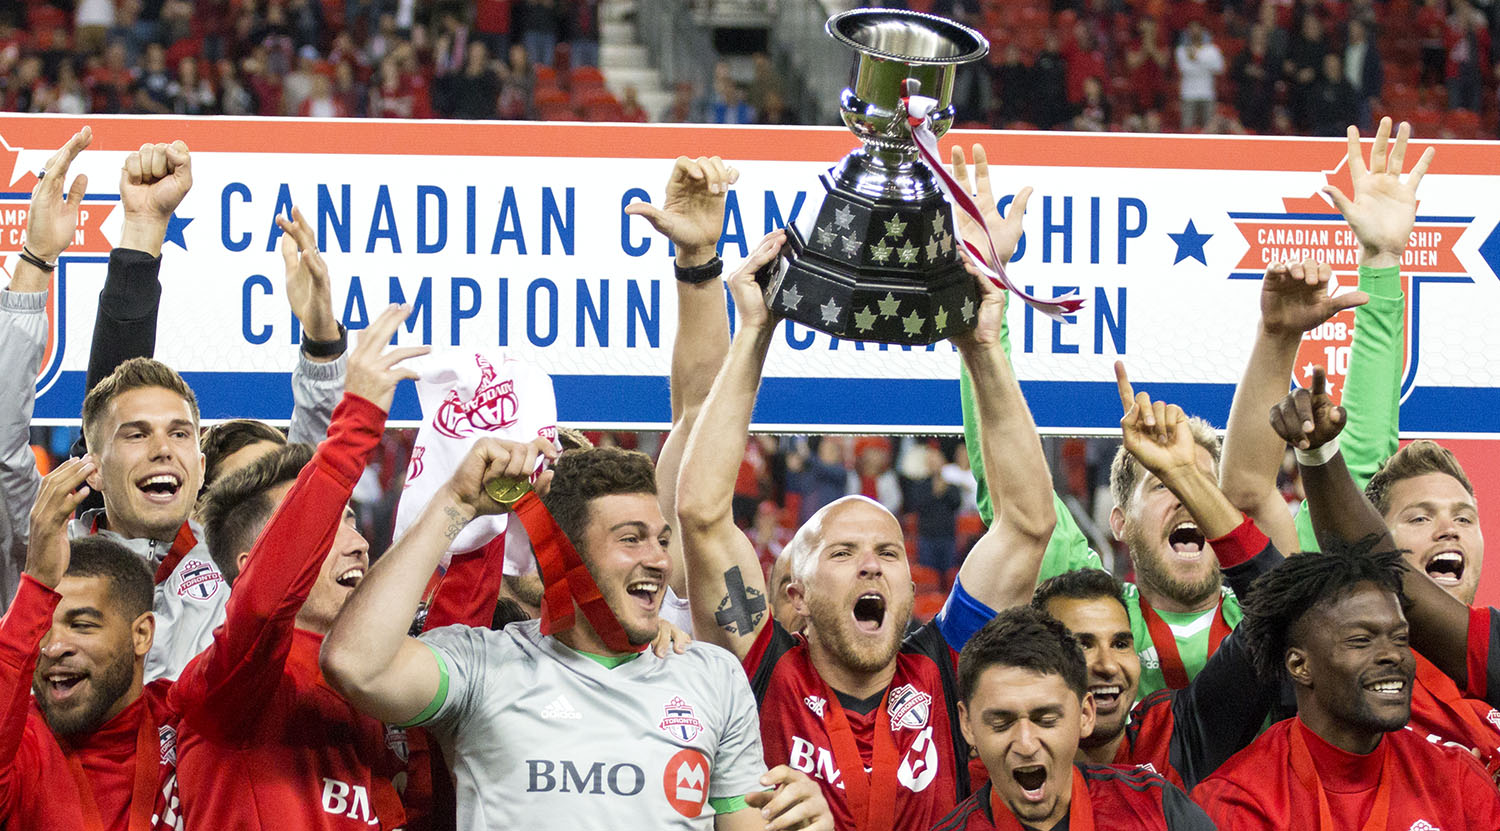 Toronto FC celebrate winning the 2017 Canadian Championship by hoisting the Voyageurs Cup in 2017 at BMO Field. Good job boys!Image by Dennis Marciniak of denMAR Media.